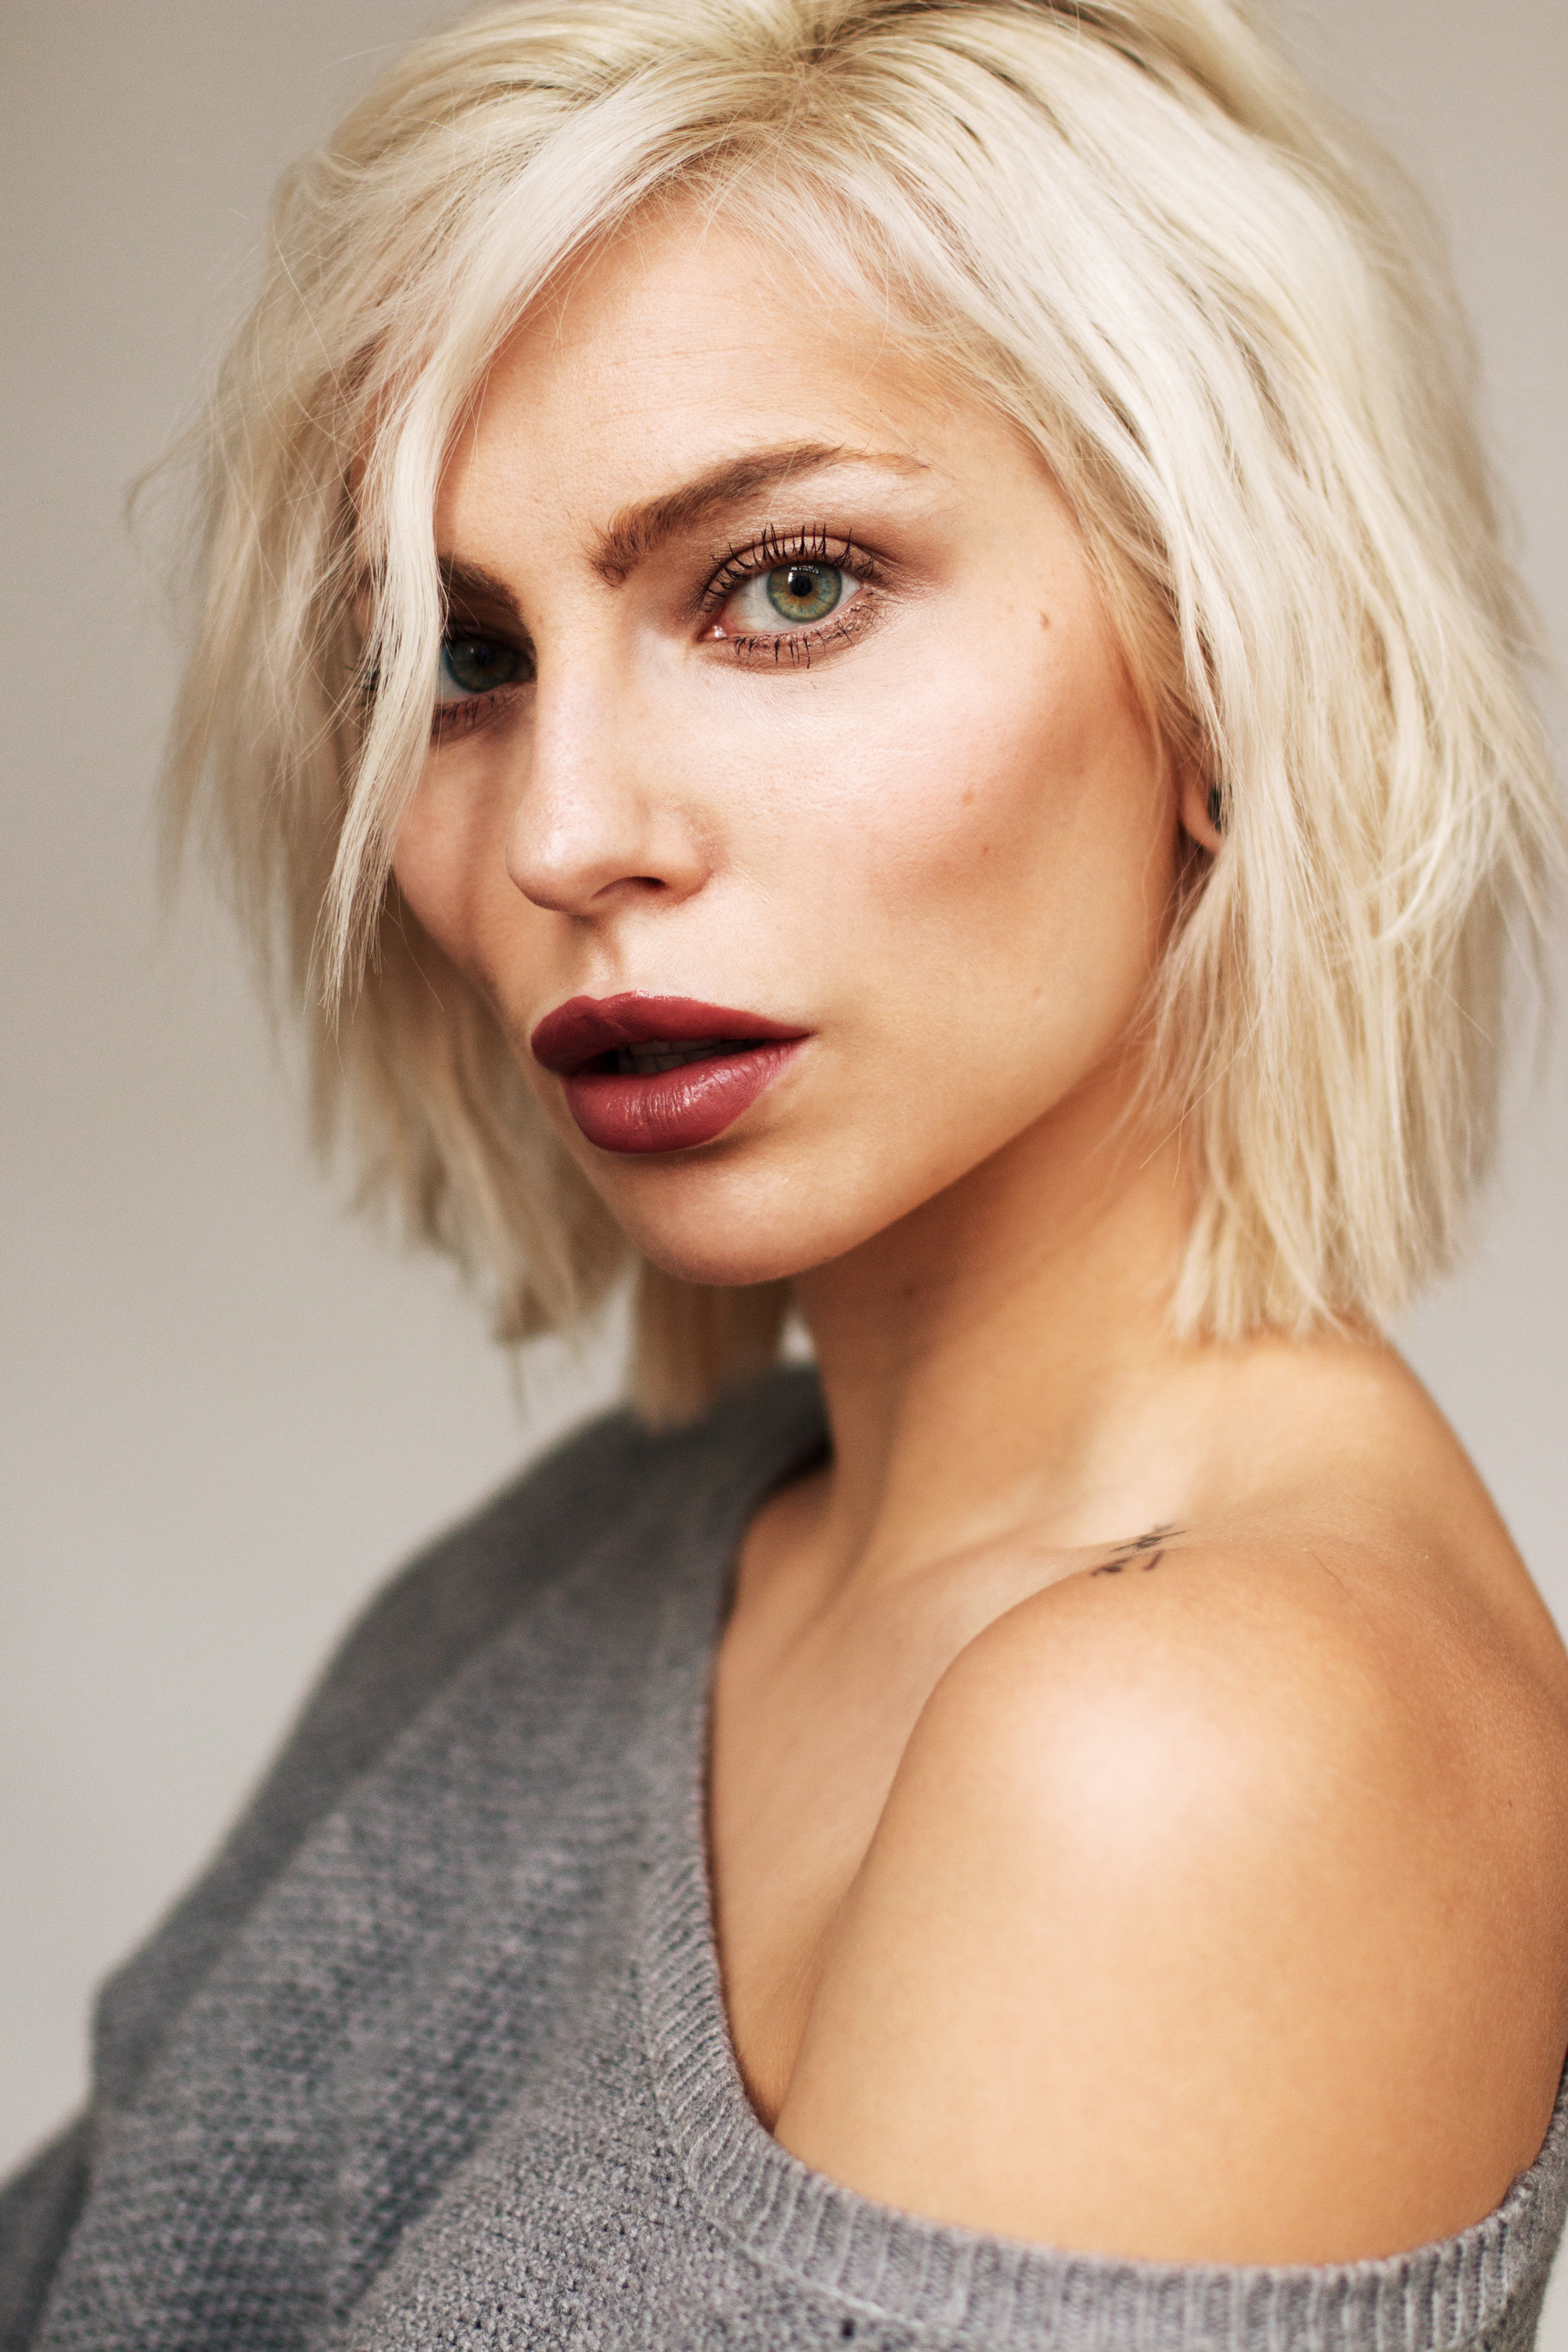 view more pictures on my blog | platin blonde hair | longbob | bob hair style